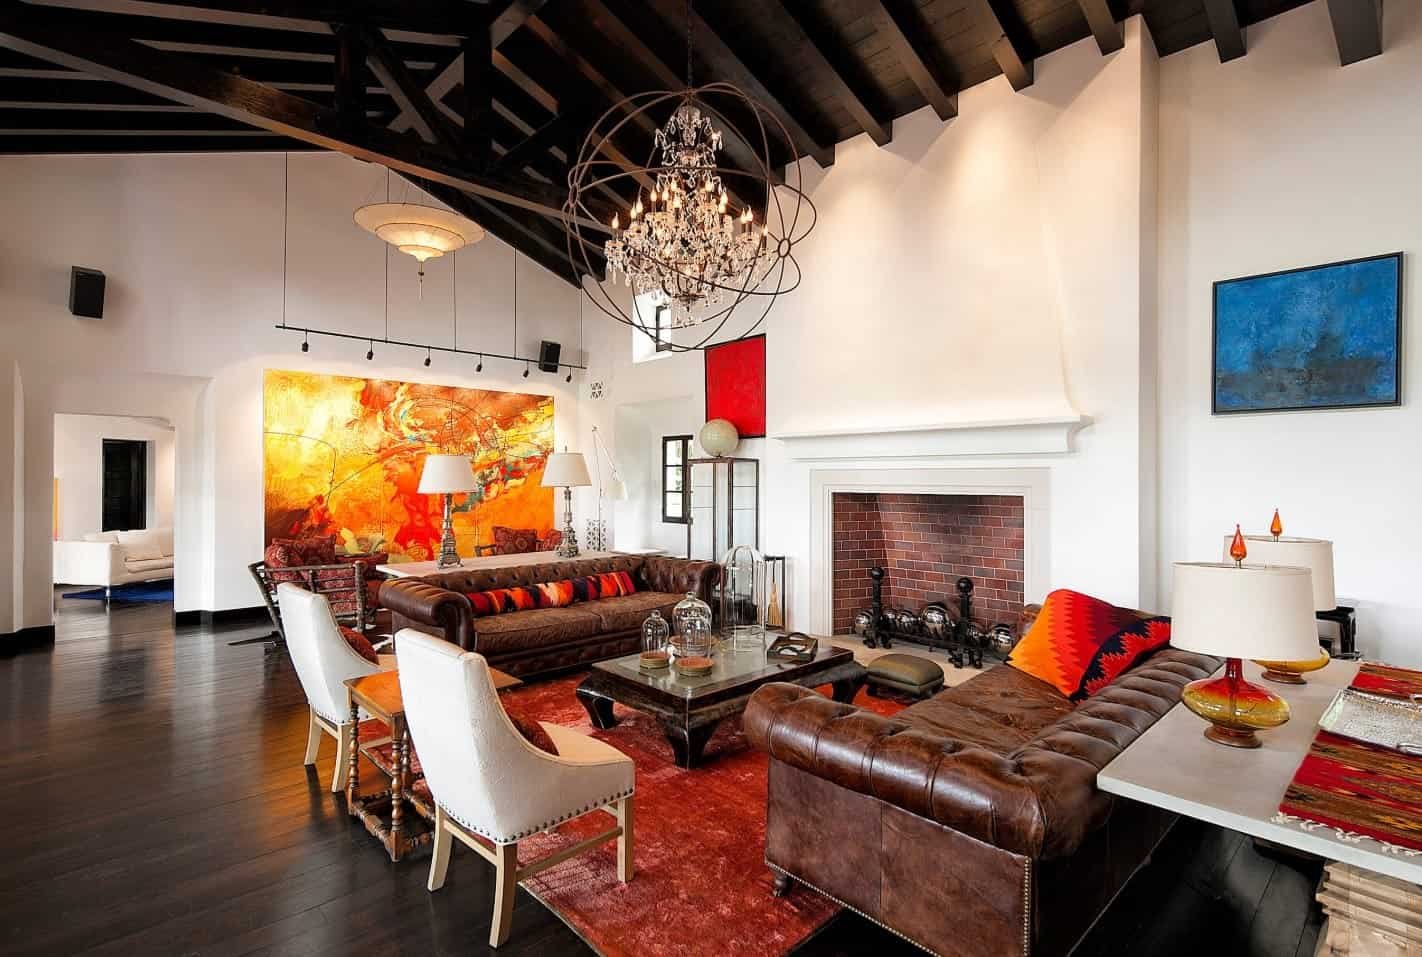 Elegant living room boasts a spectacular chandelier that hung from a wood beam ceiling. It features matching leather sofas and white chairs surrounding a coffee table and the brick fireplace.